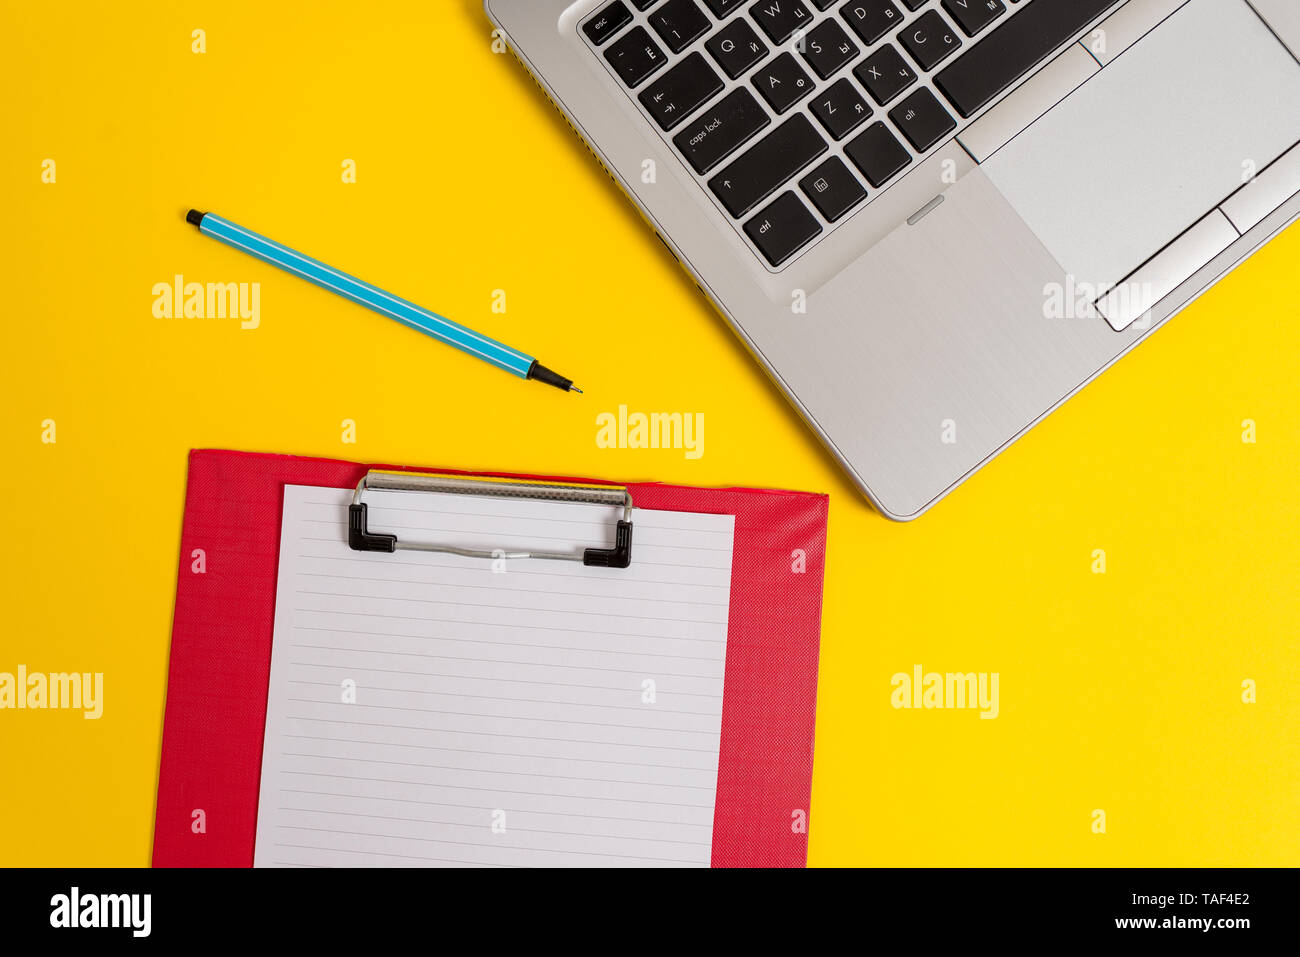 Trendy metallic laptop clipboard paper sheet marker colored background - Stock Image